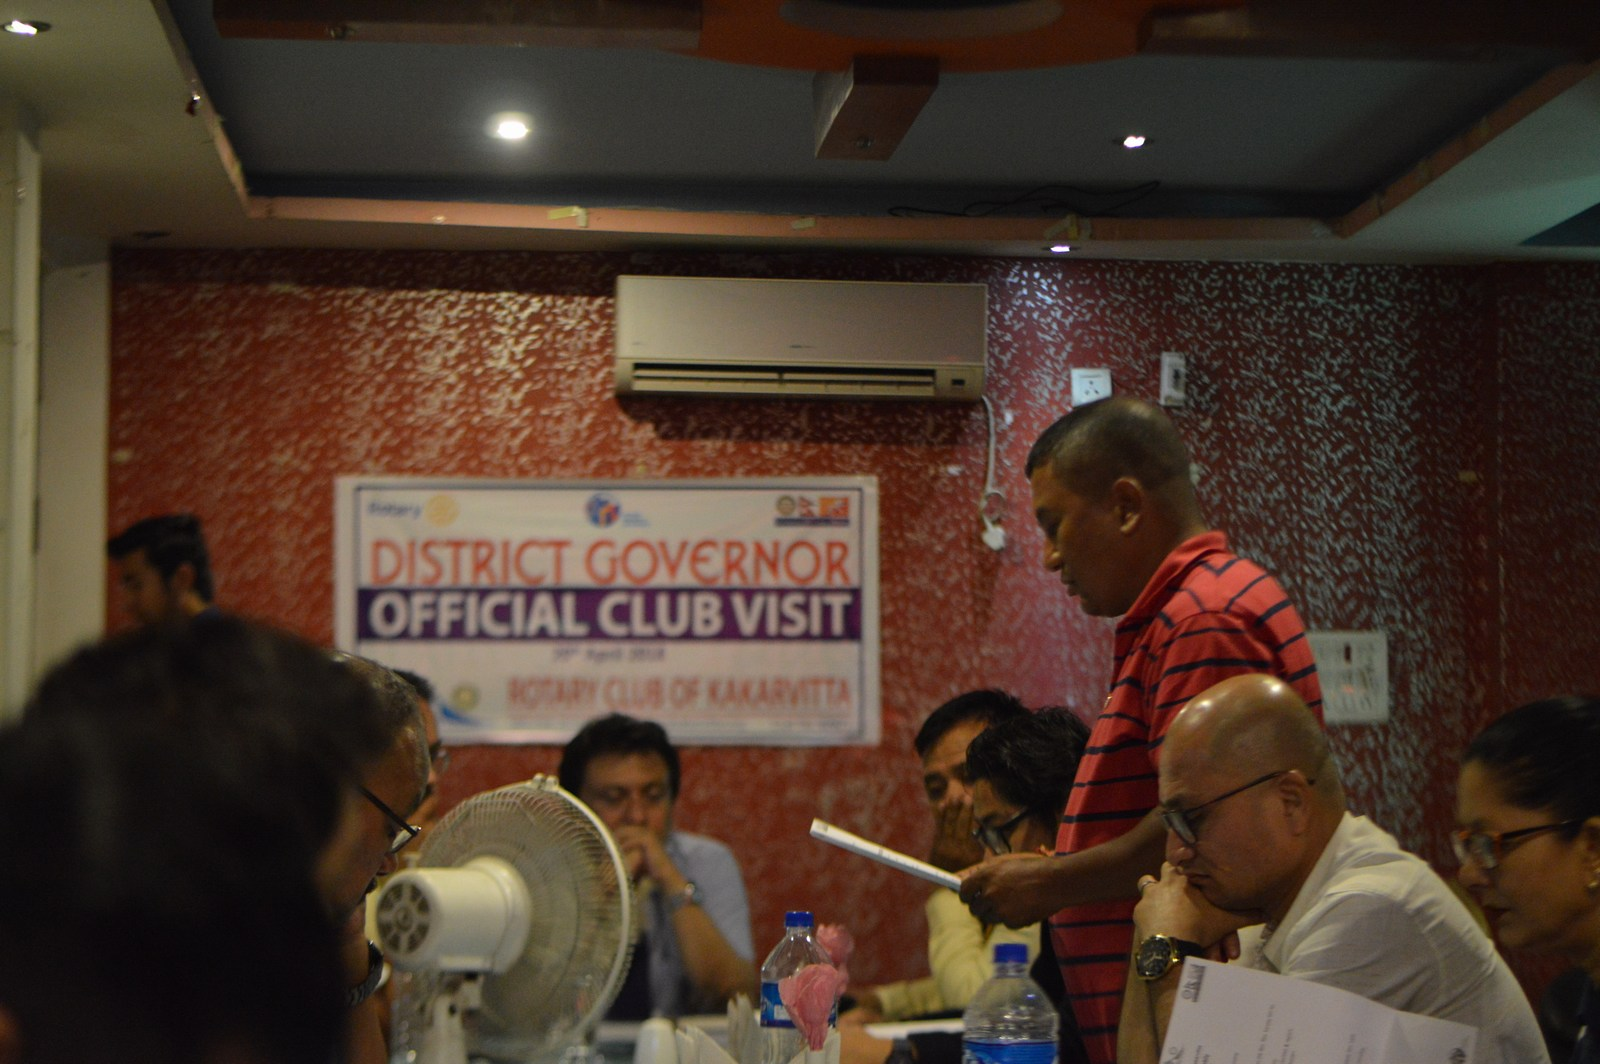 District-Governors-Official-Club-Visit-2017-18-Rotary-Club-of-Kakarvitta-16